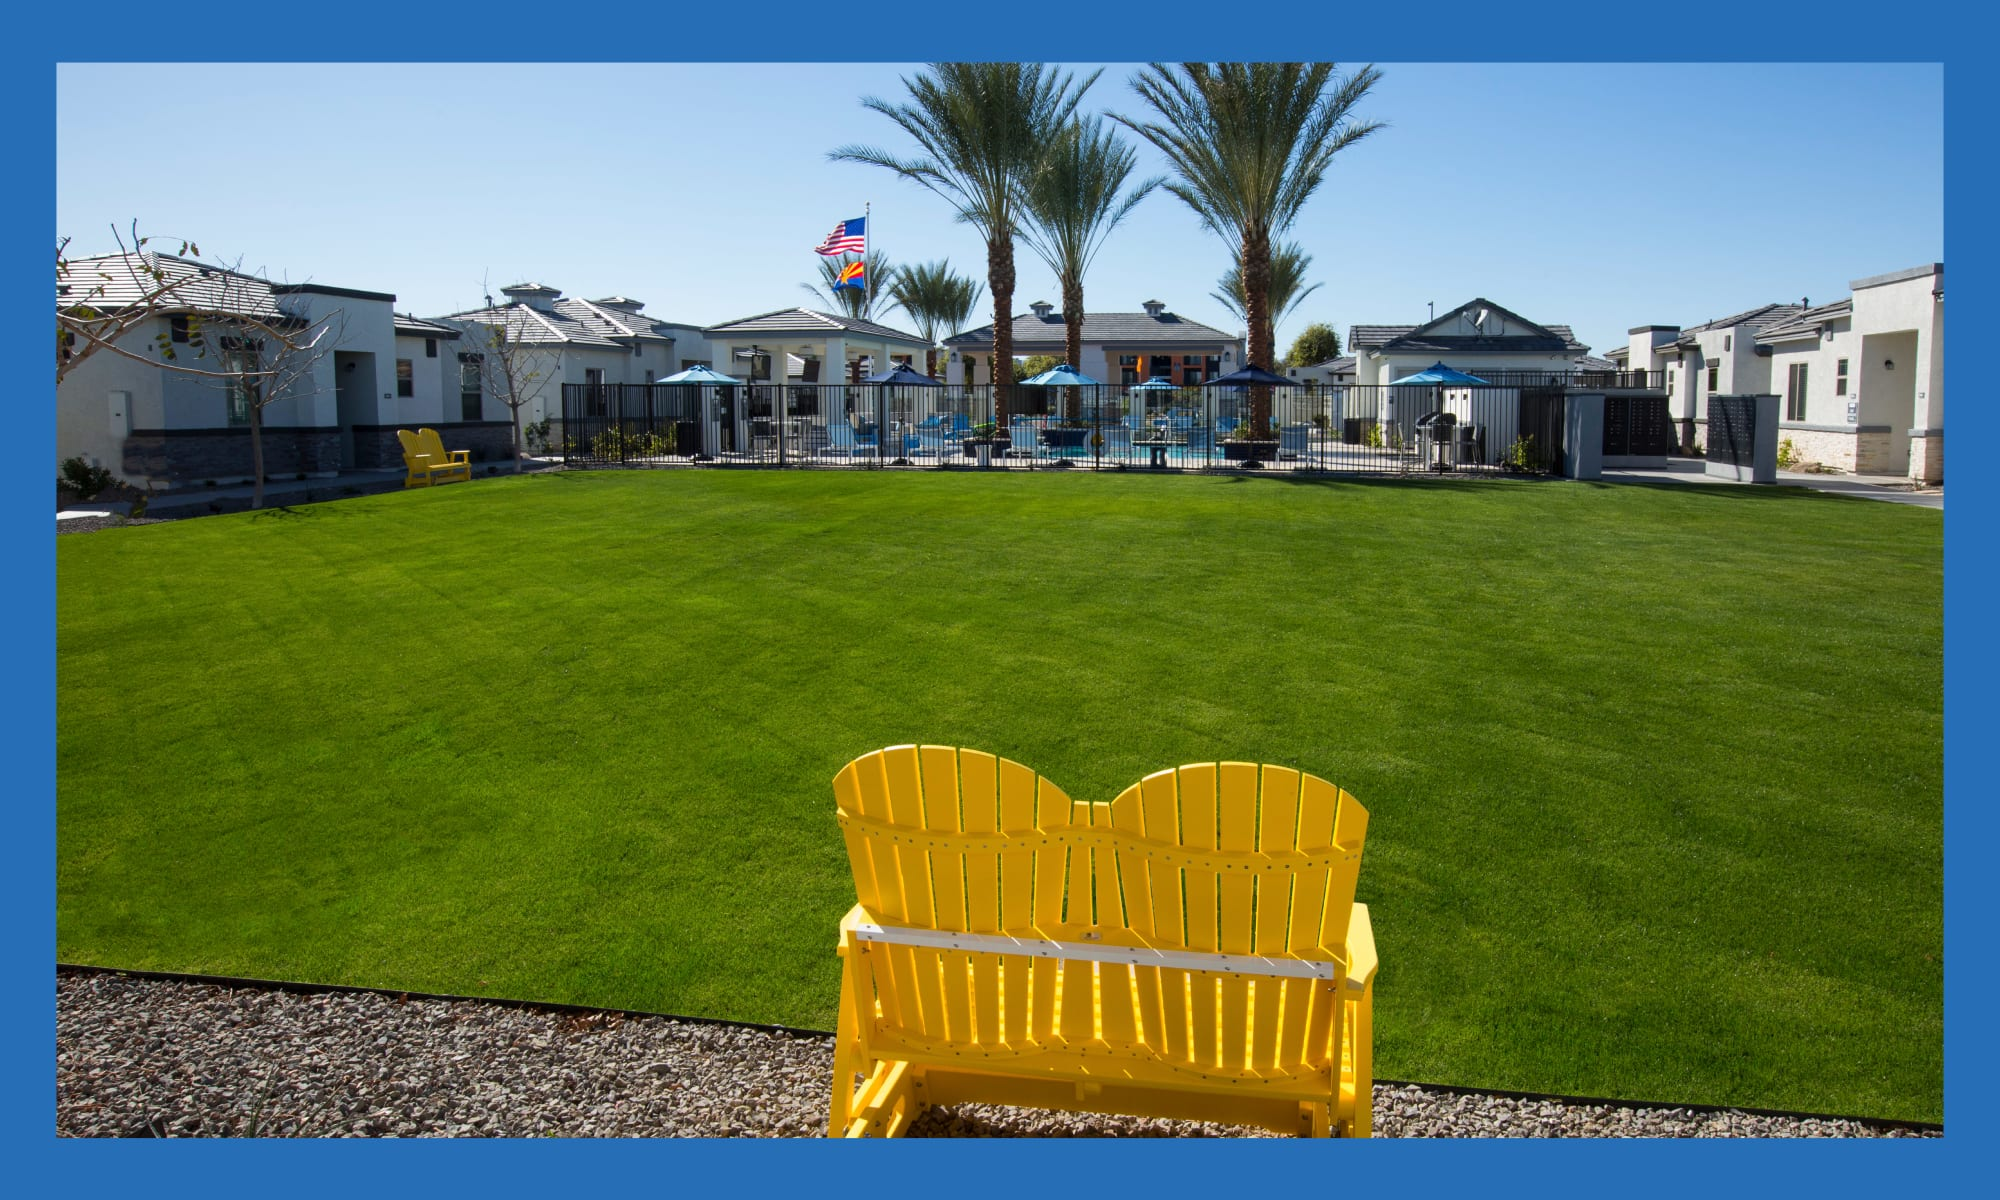 Beautifully maintained lawn at Christopher Todd Communities At Marley Park in Surprise, Arizona